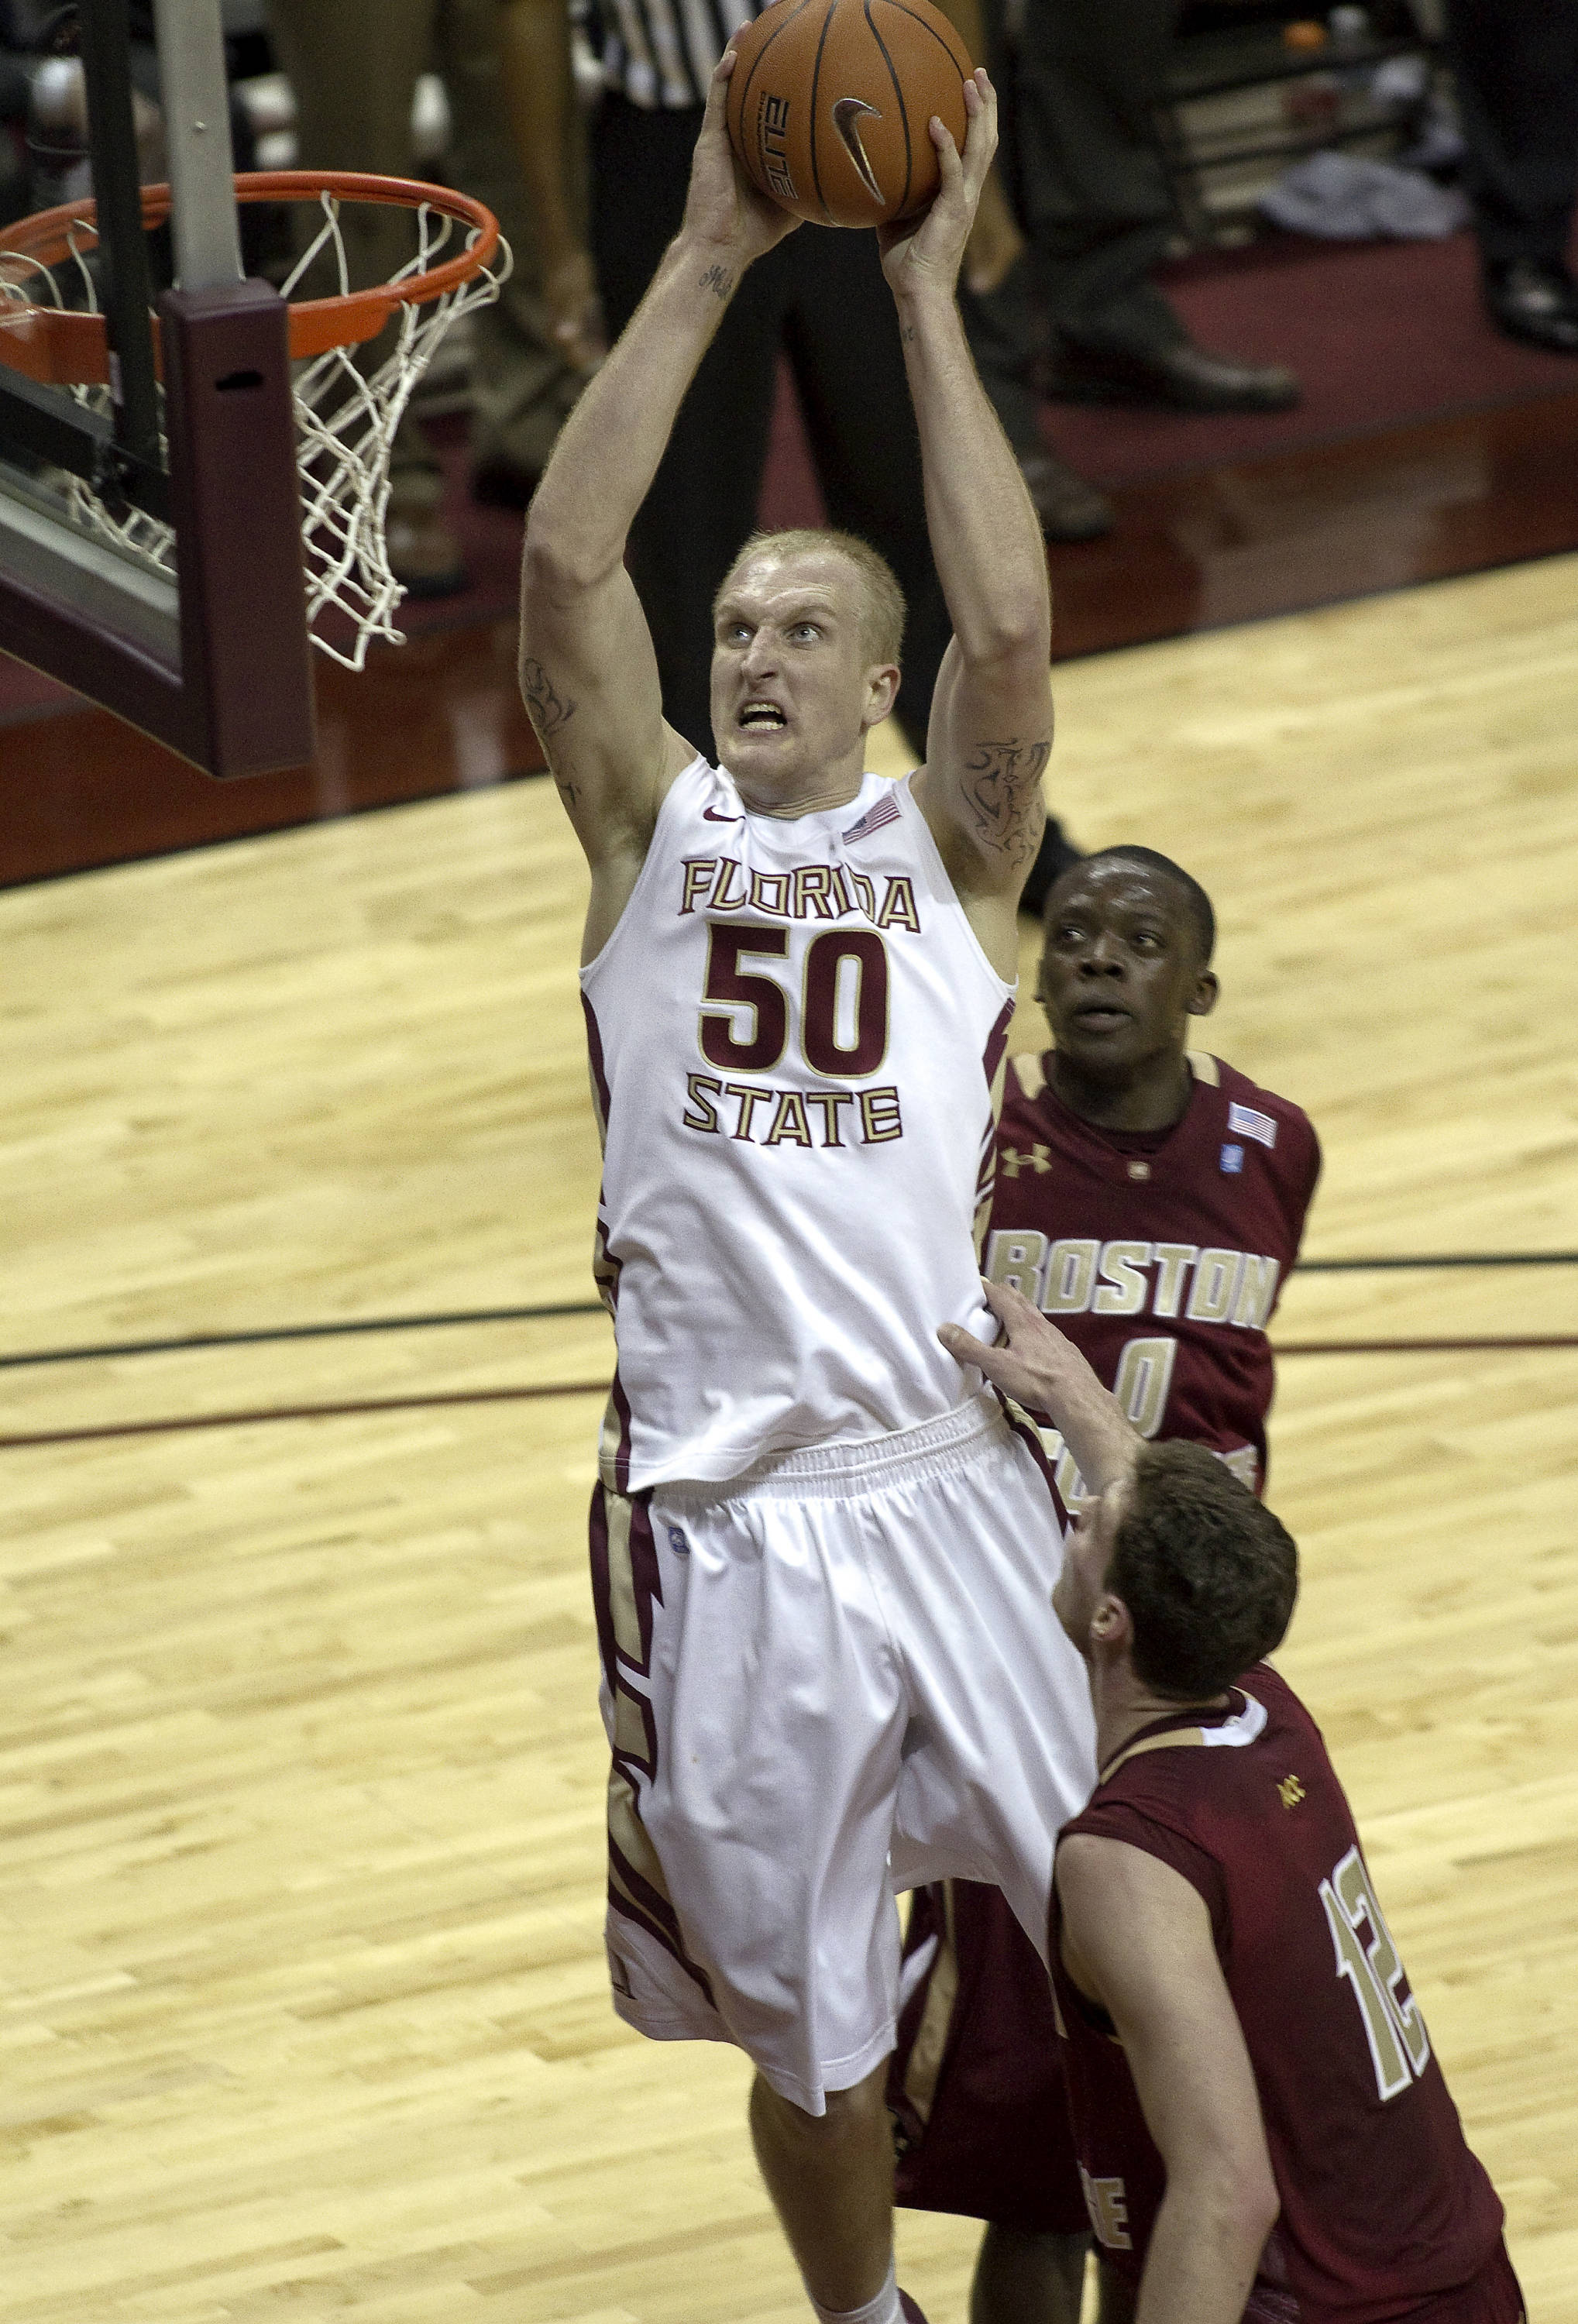 FSU vs Boston College - 01/22/11 - John Kreft (50)